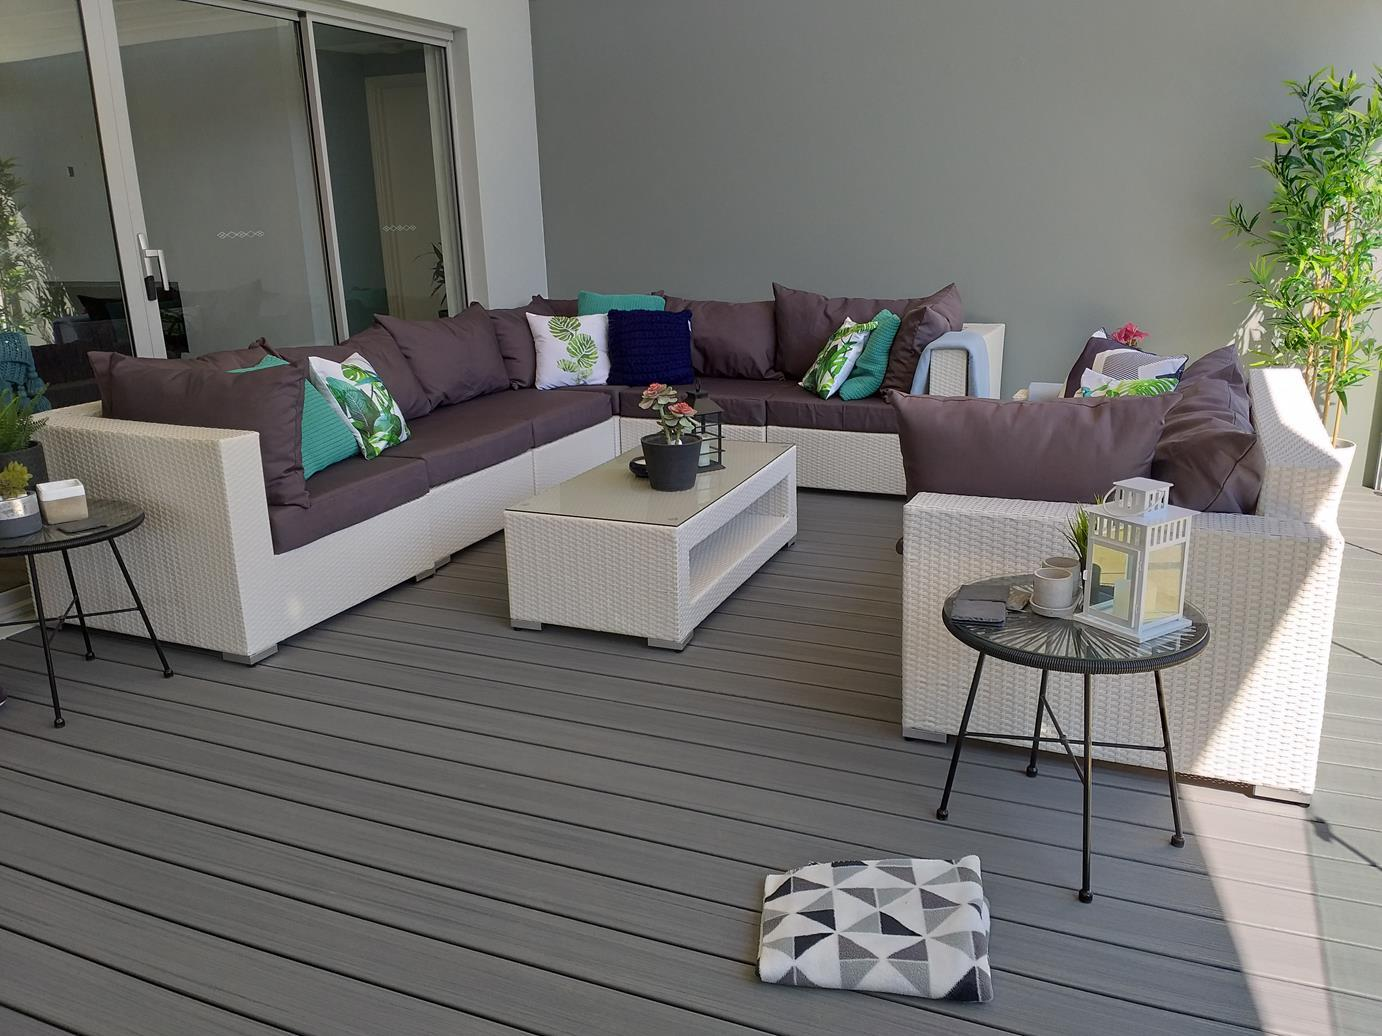 And with the festive season and summer in full swing theres no better time to turn your own backyard or patio into a spectacular place to relax and